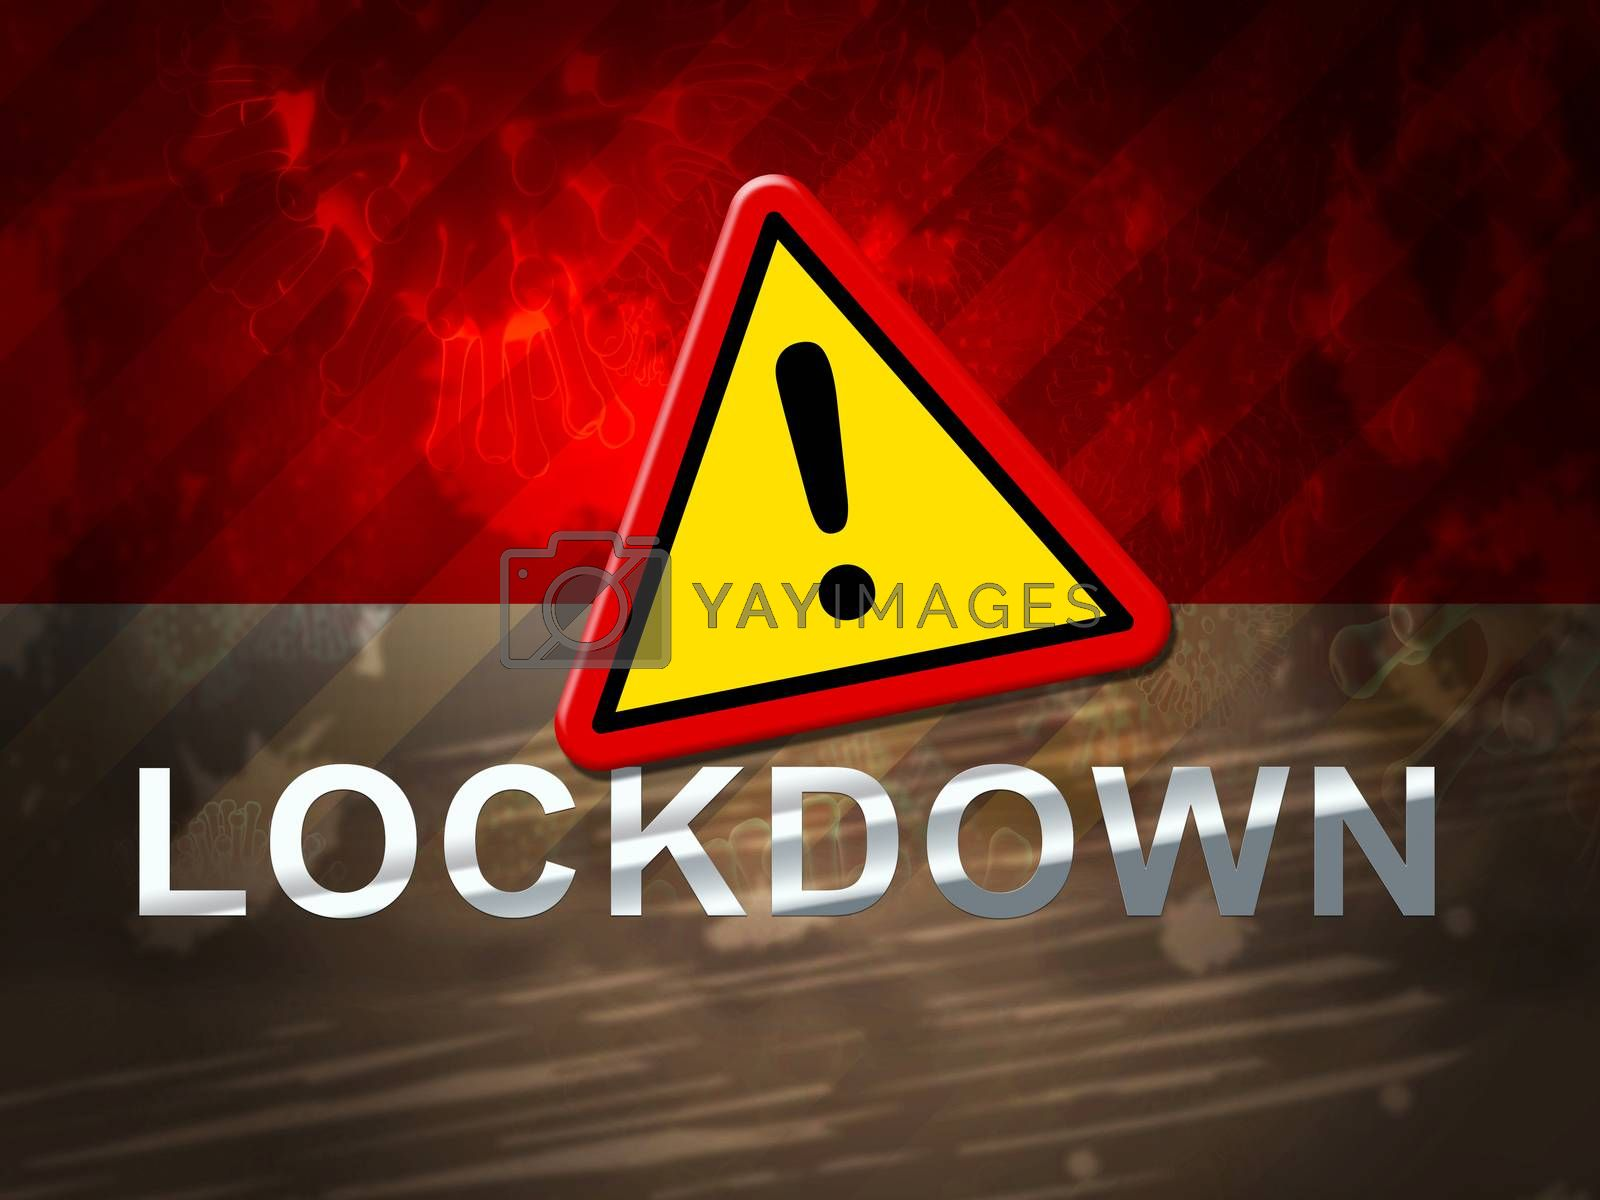 Indonesia lockdown sign against coronavirus covid-19. Indonesian stay home order to enforce self isolation and stop infection - 3d Illustration